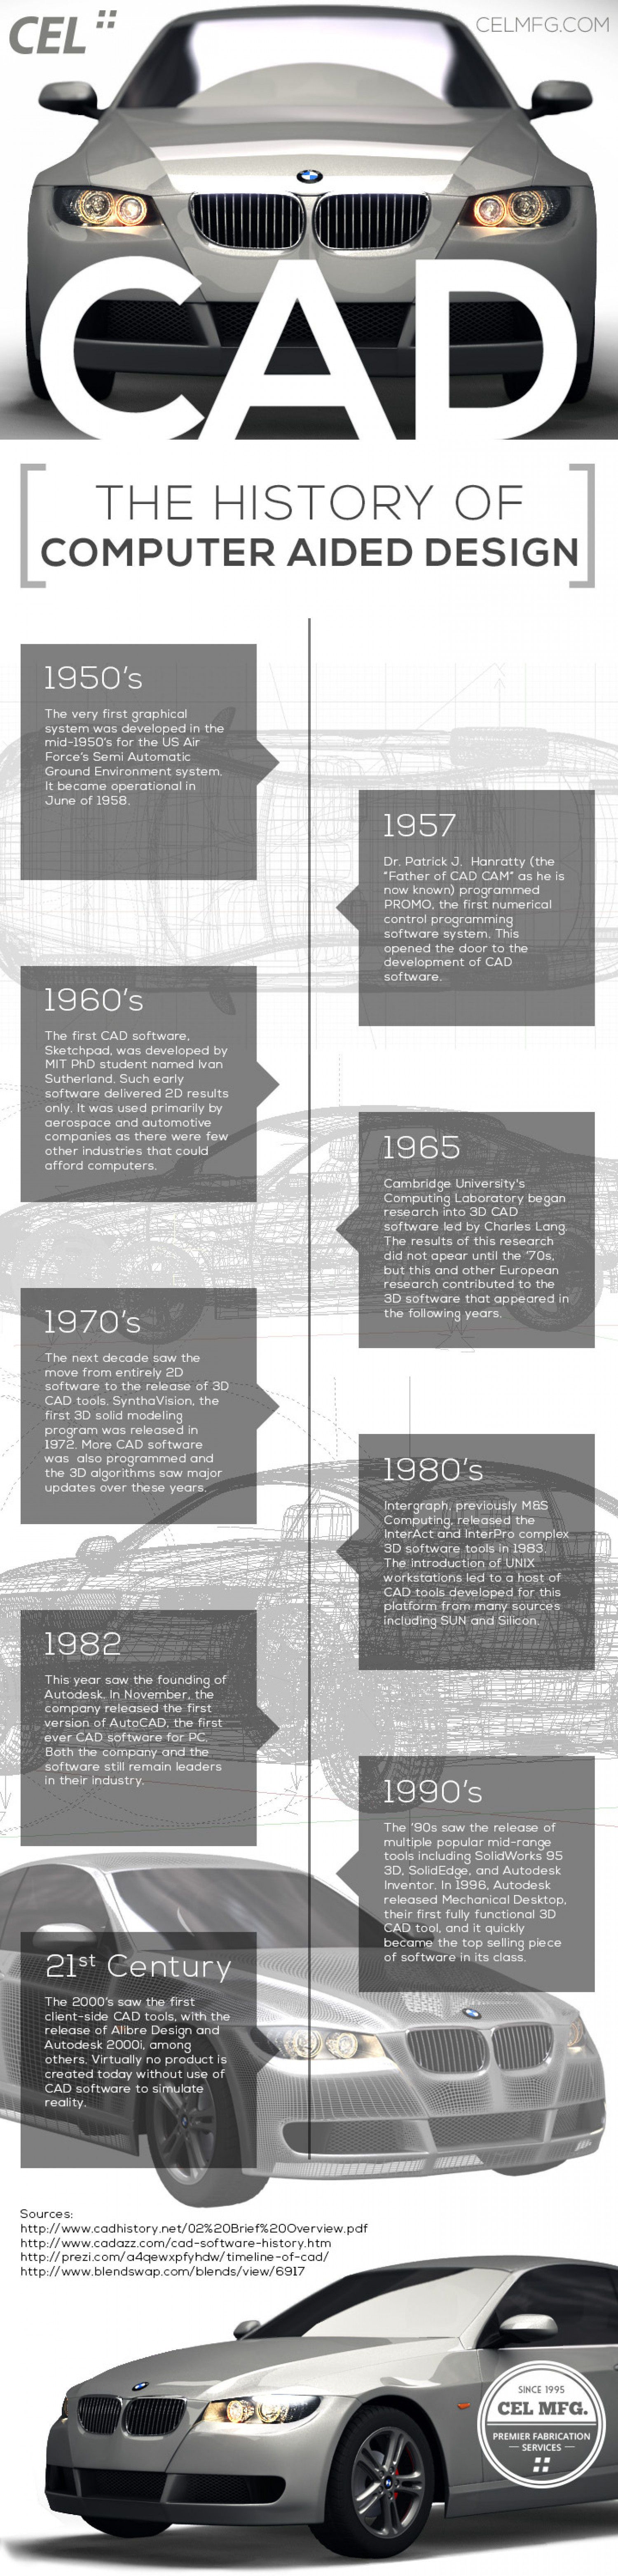 The History of CAD Software Infographic